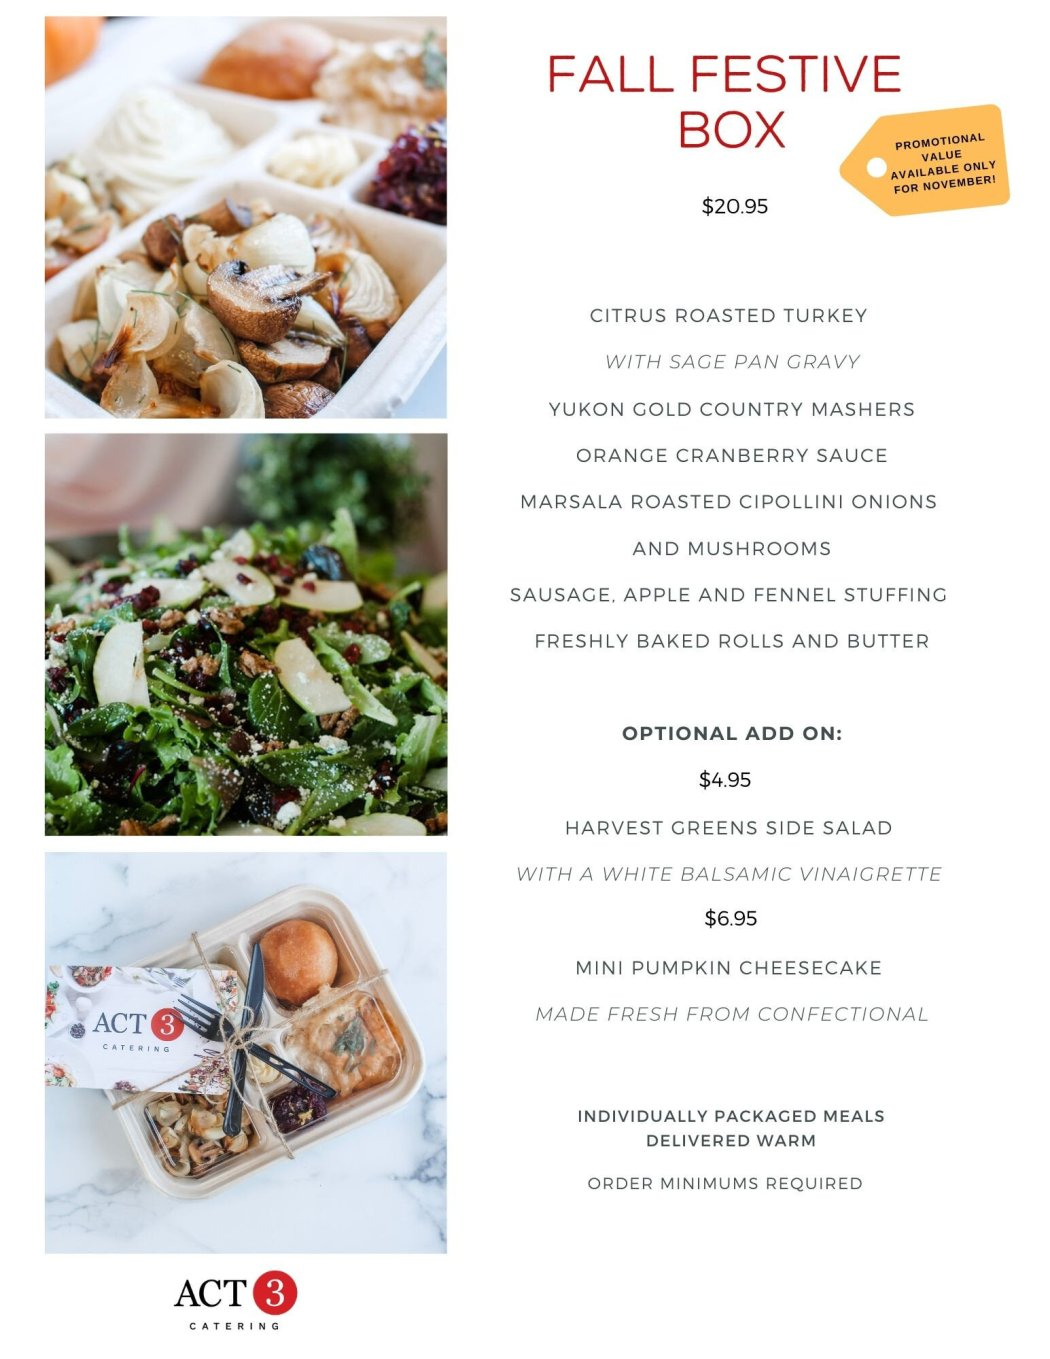 Fall Festive Box_Holiday Meals_ACT 3 Catering.jpg